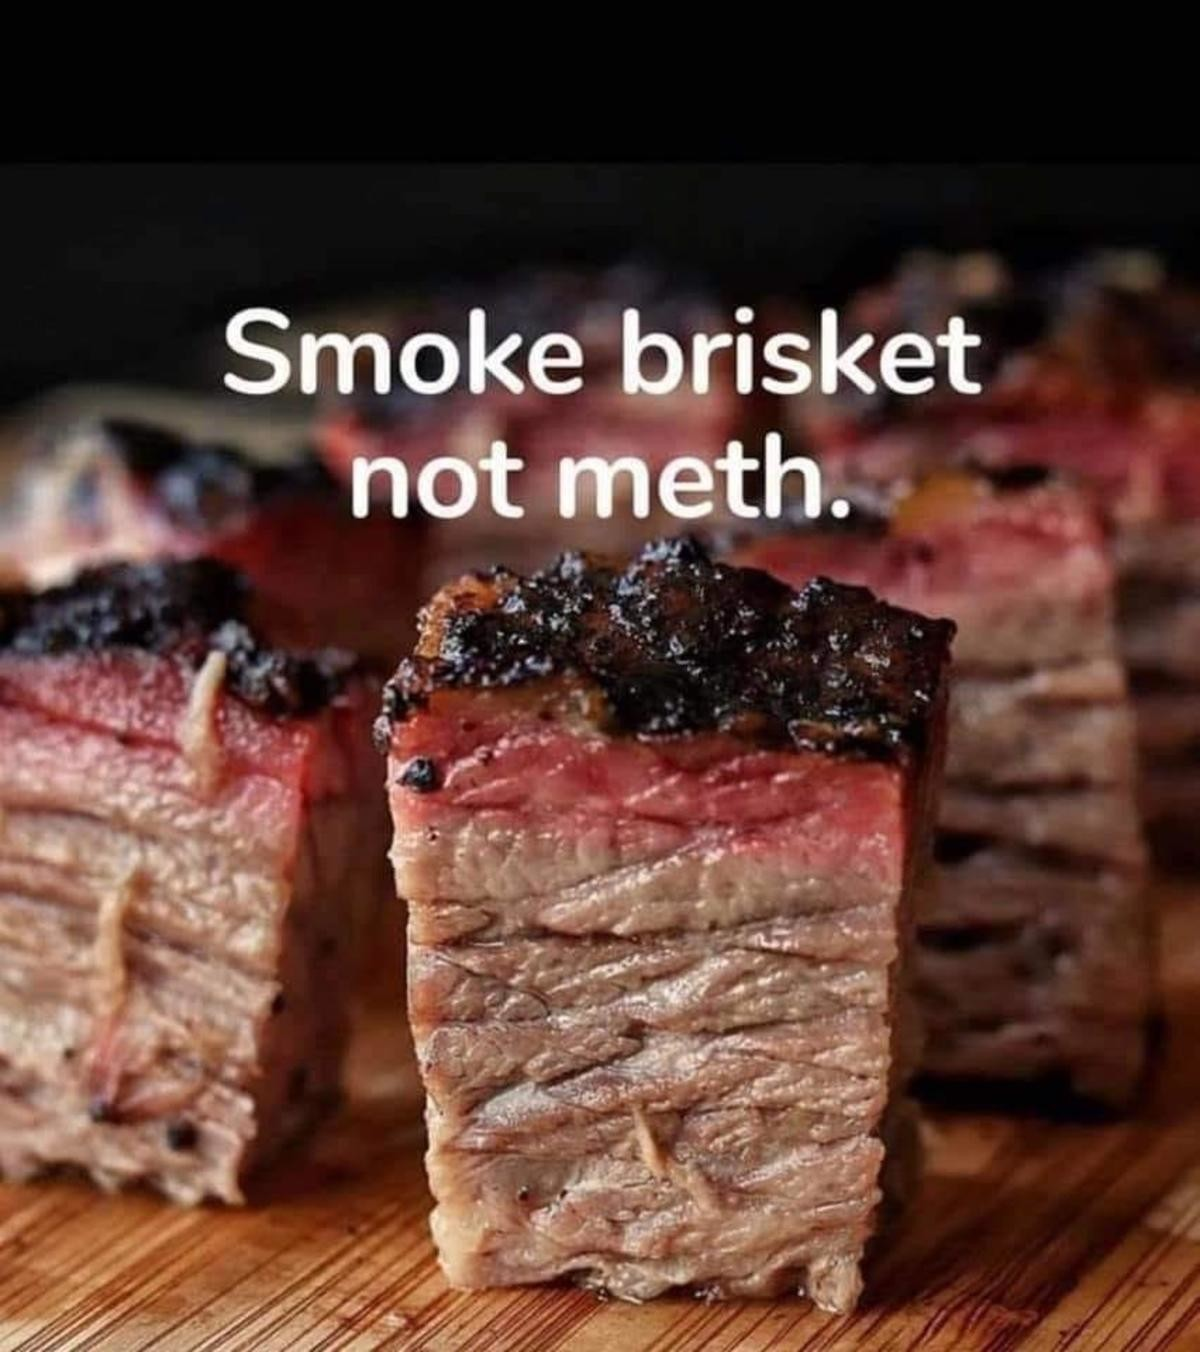 WHY NOT BOTH. .. or put meth in the brisket.